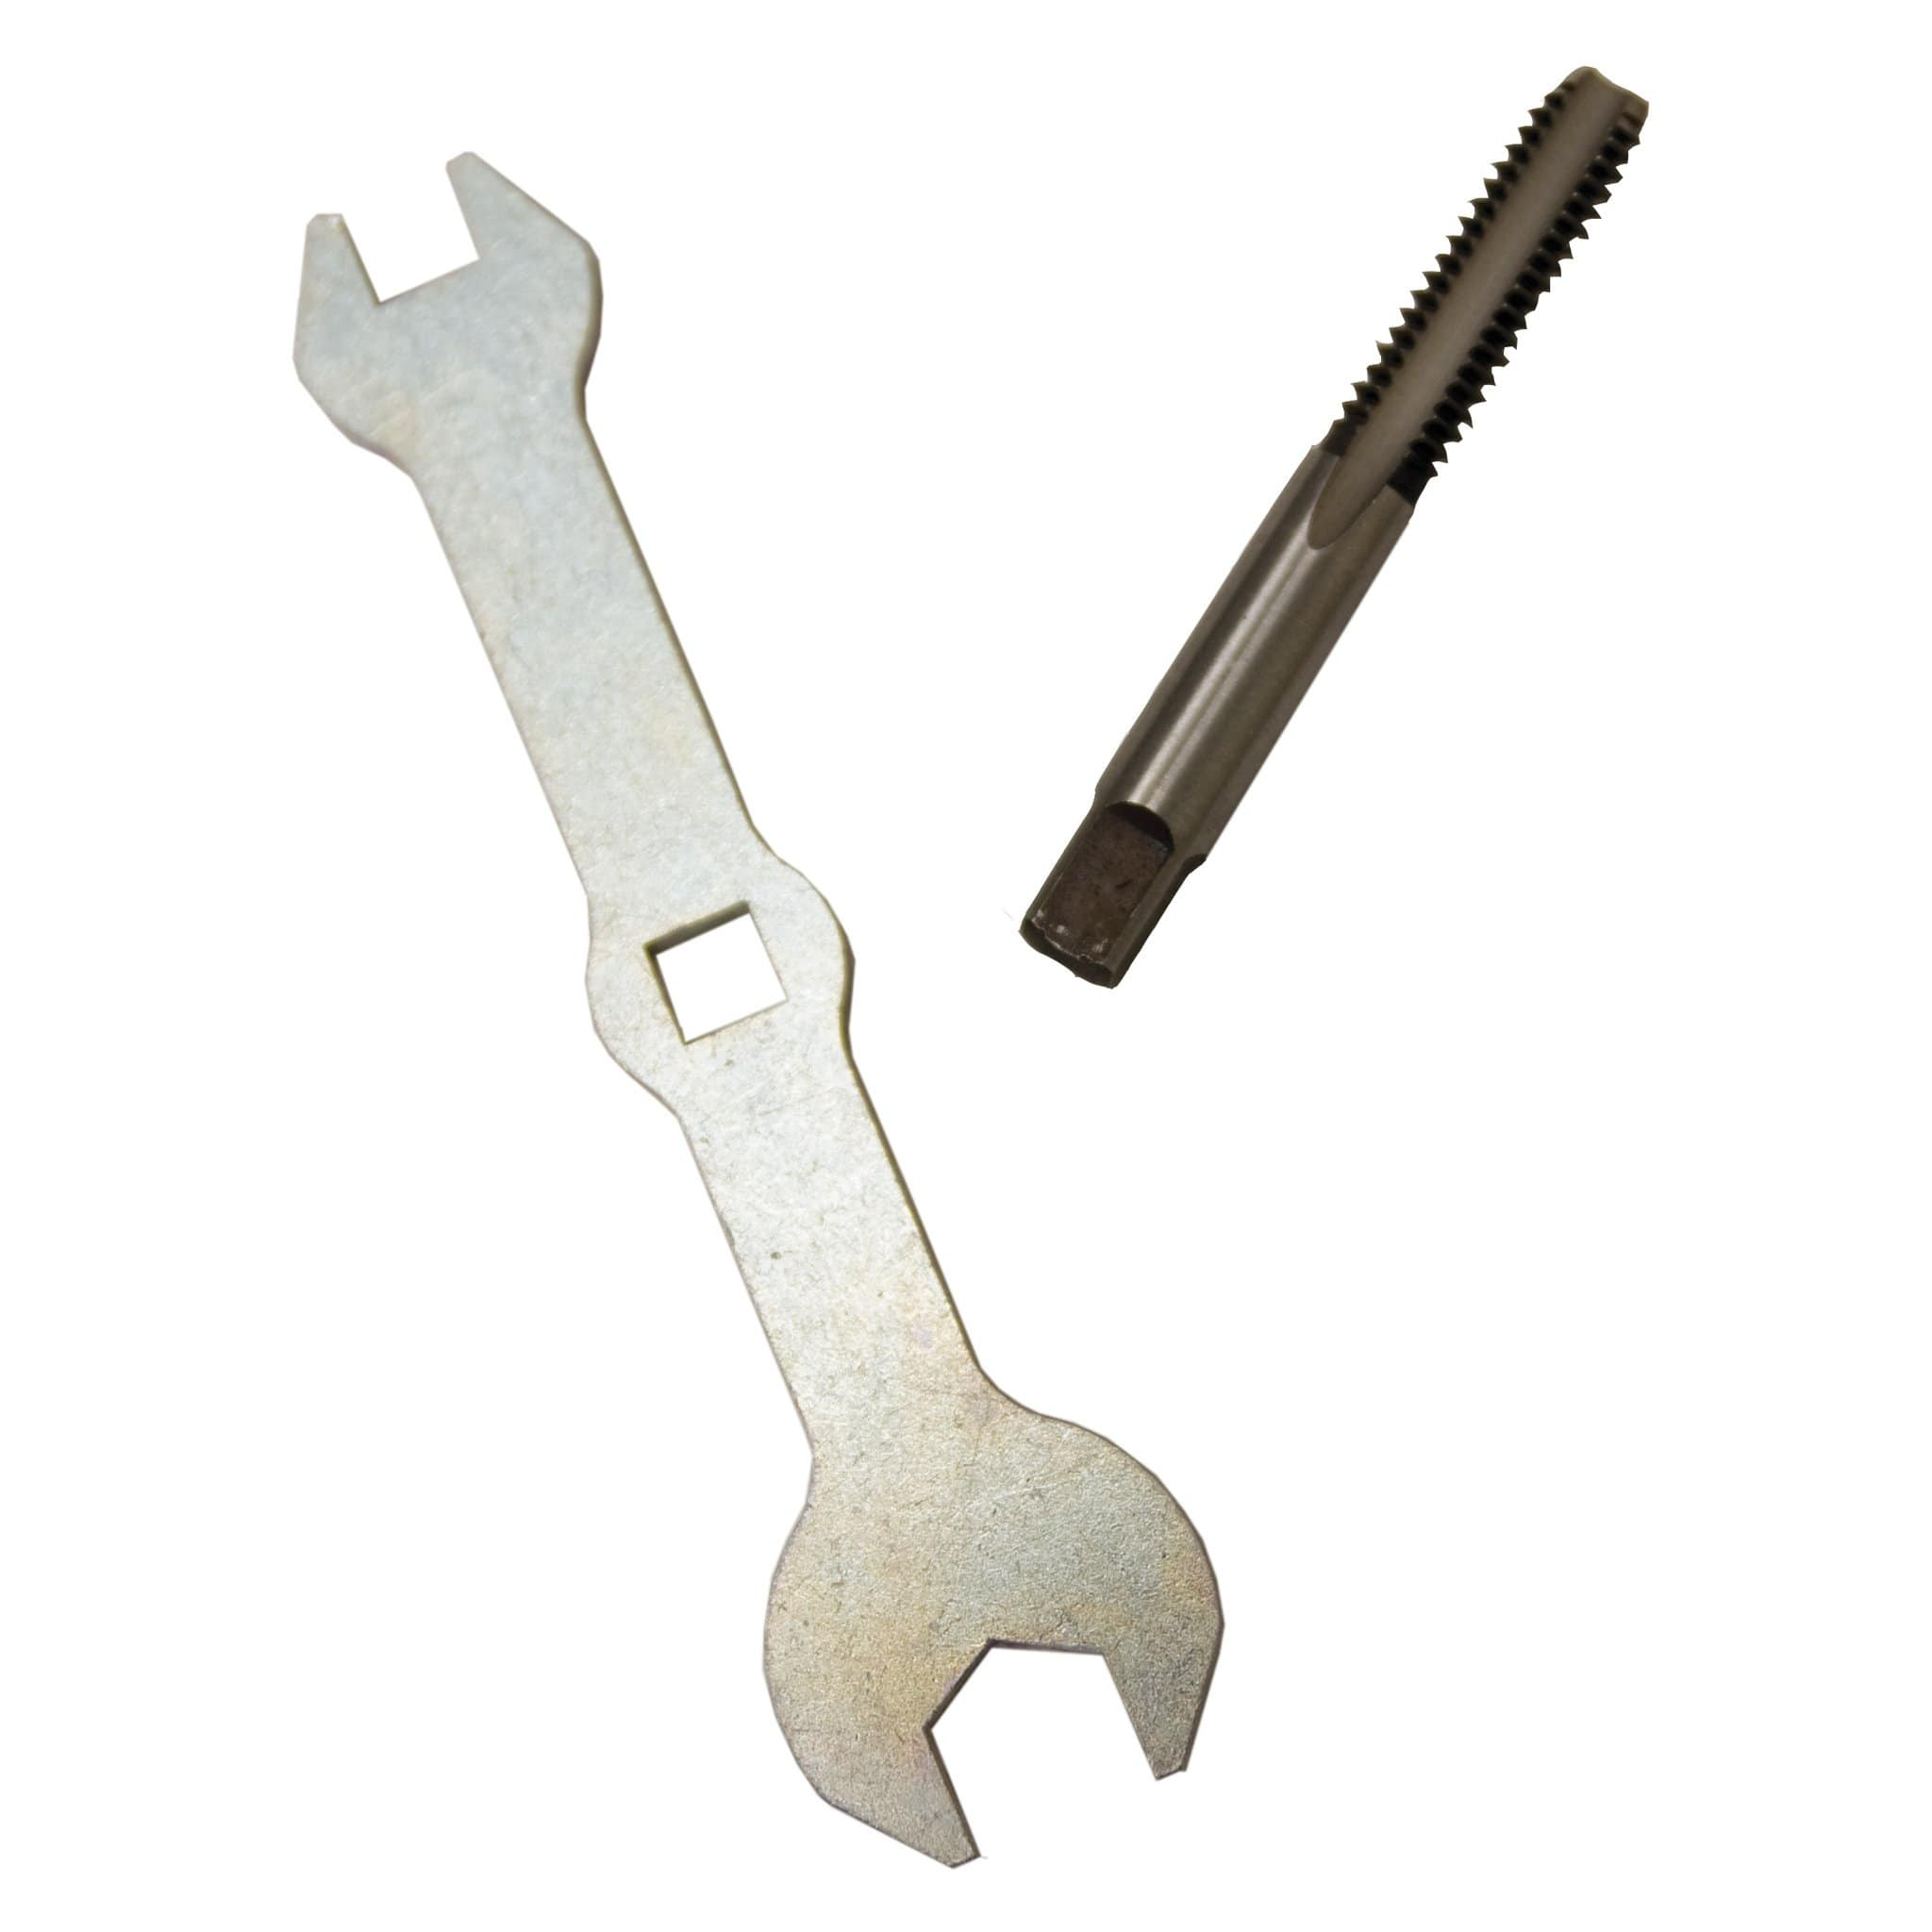 Liveryman Stud Tap and Spanner EPD0160